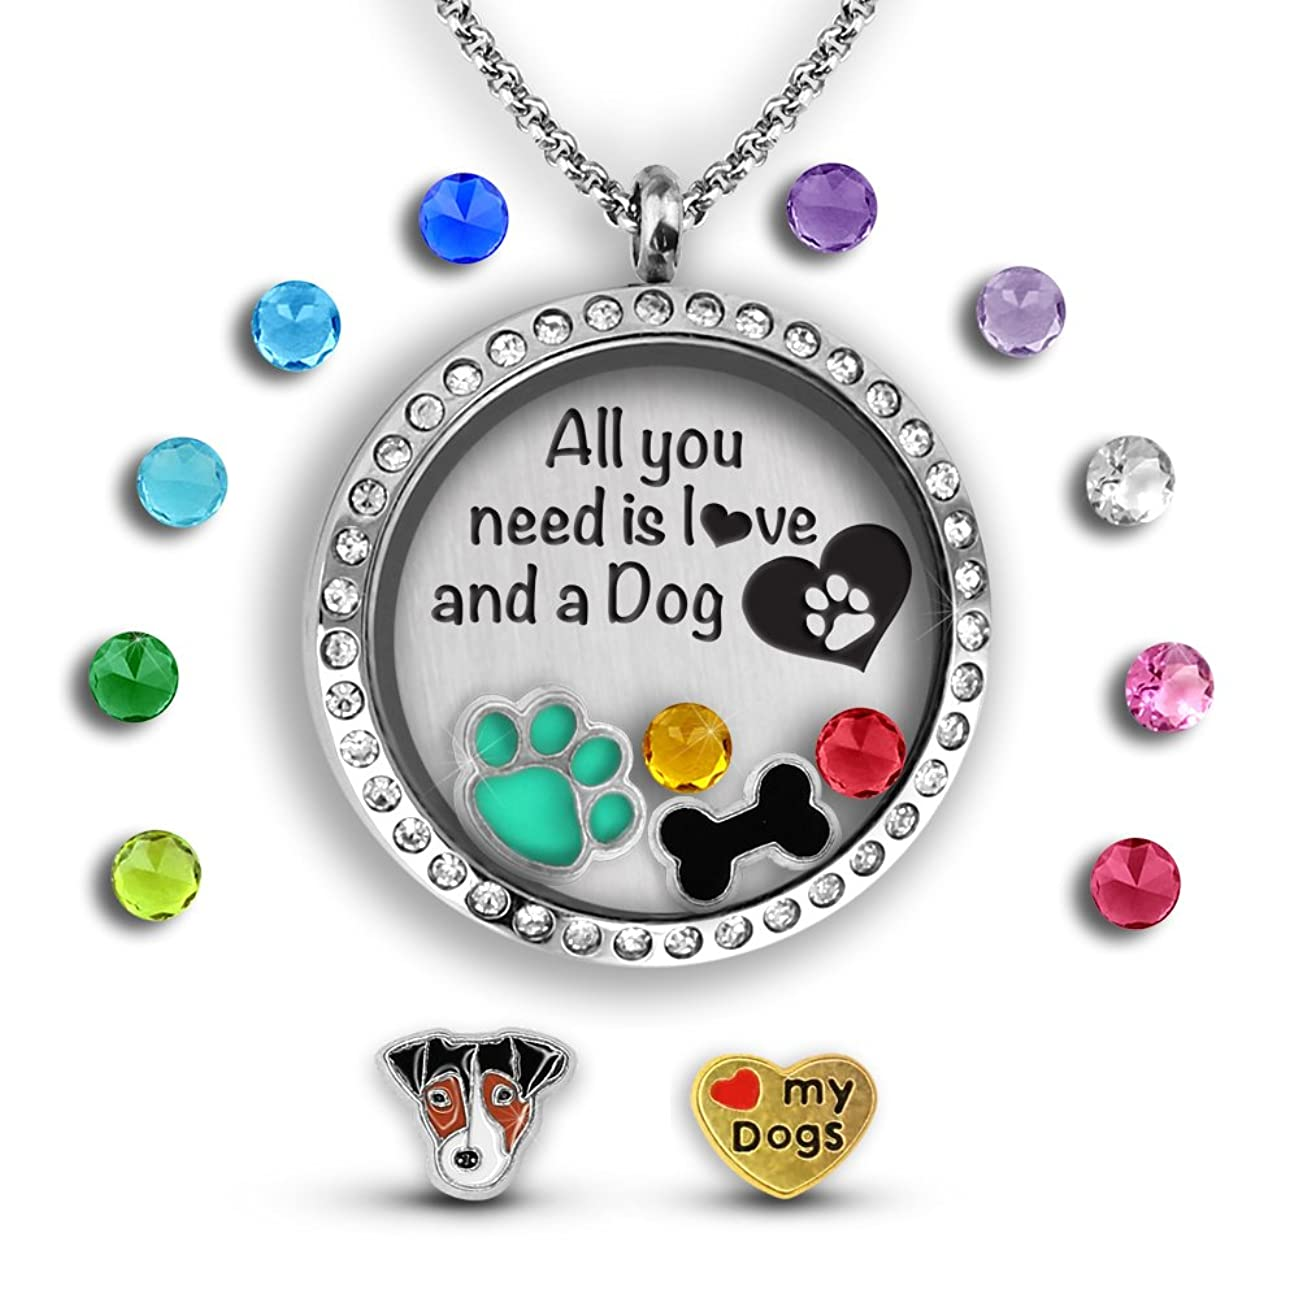 A Touch of Dazzle for a Dog Lovers | Dog Mom Gifts Dog Lover Gifts for Women for Dog Mom Dog Jewelry for Women Gifts for Dog Lovers | Floating Charm Necklace for Dog Grandma